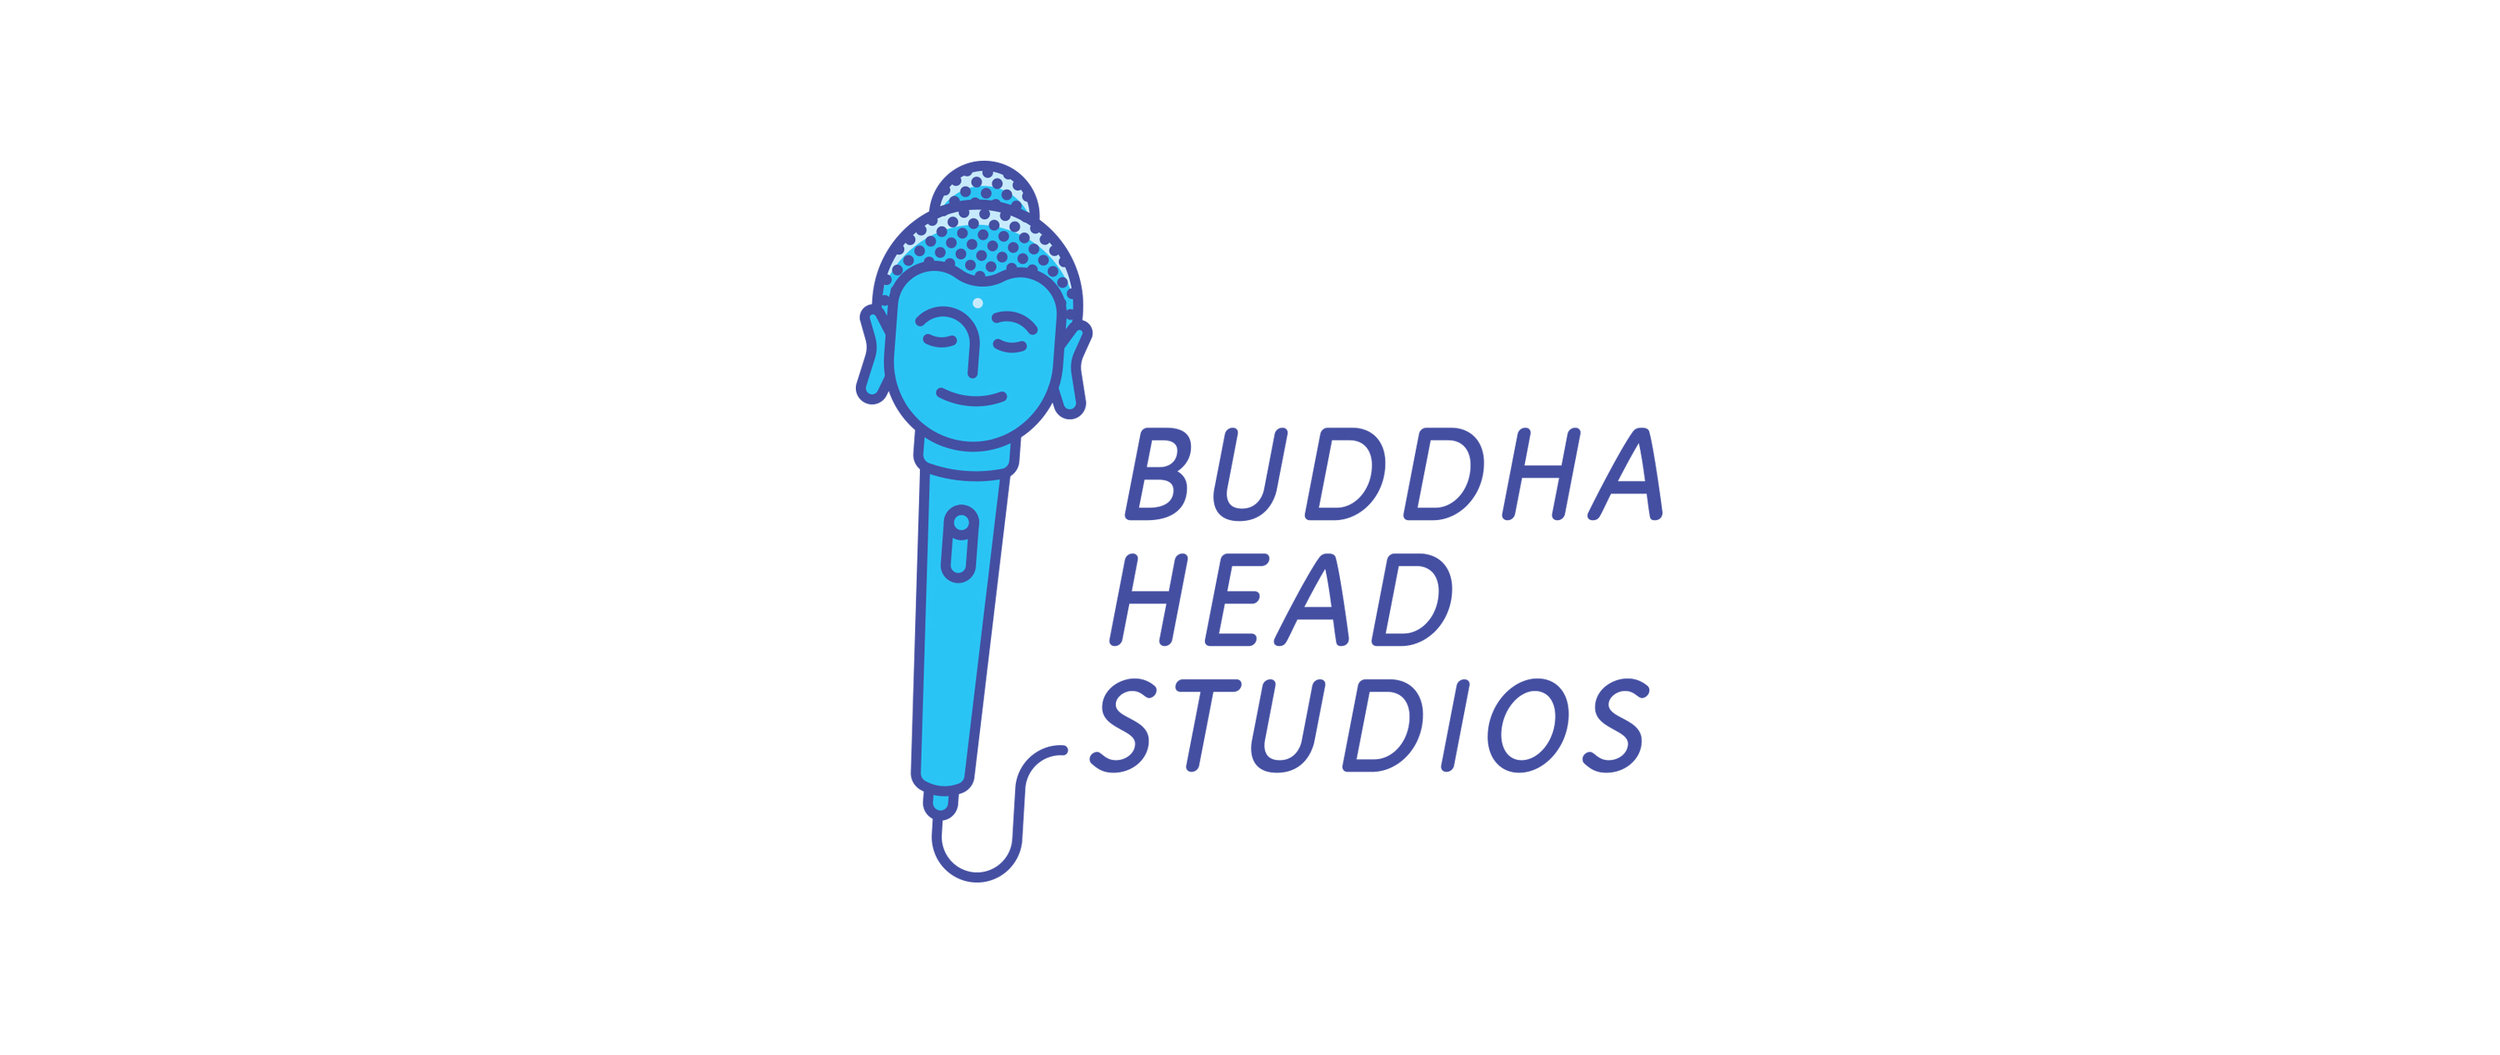 A Denver-based recording studio that combines the Buddha with musical imagery